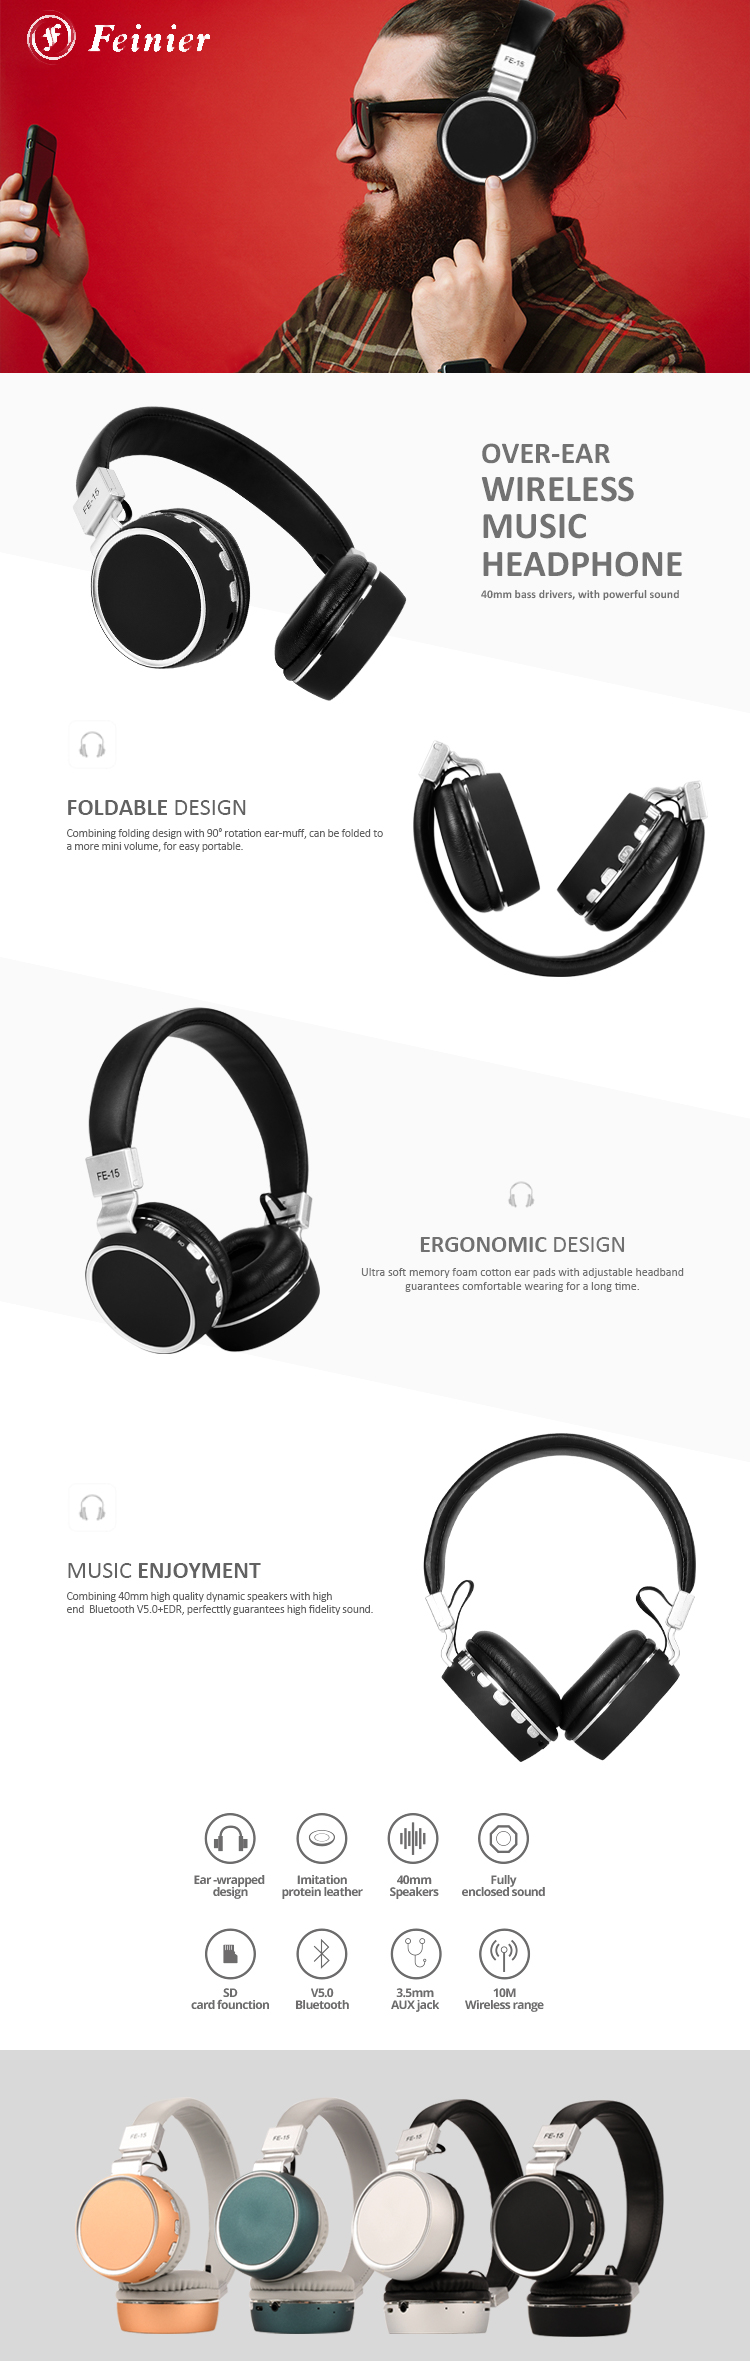 high sound quality oem hd stereo lightweight foldable dual modes wired wireless over ear bluetooths headphone with tf card slot